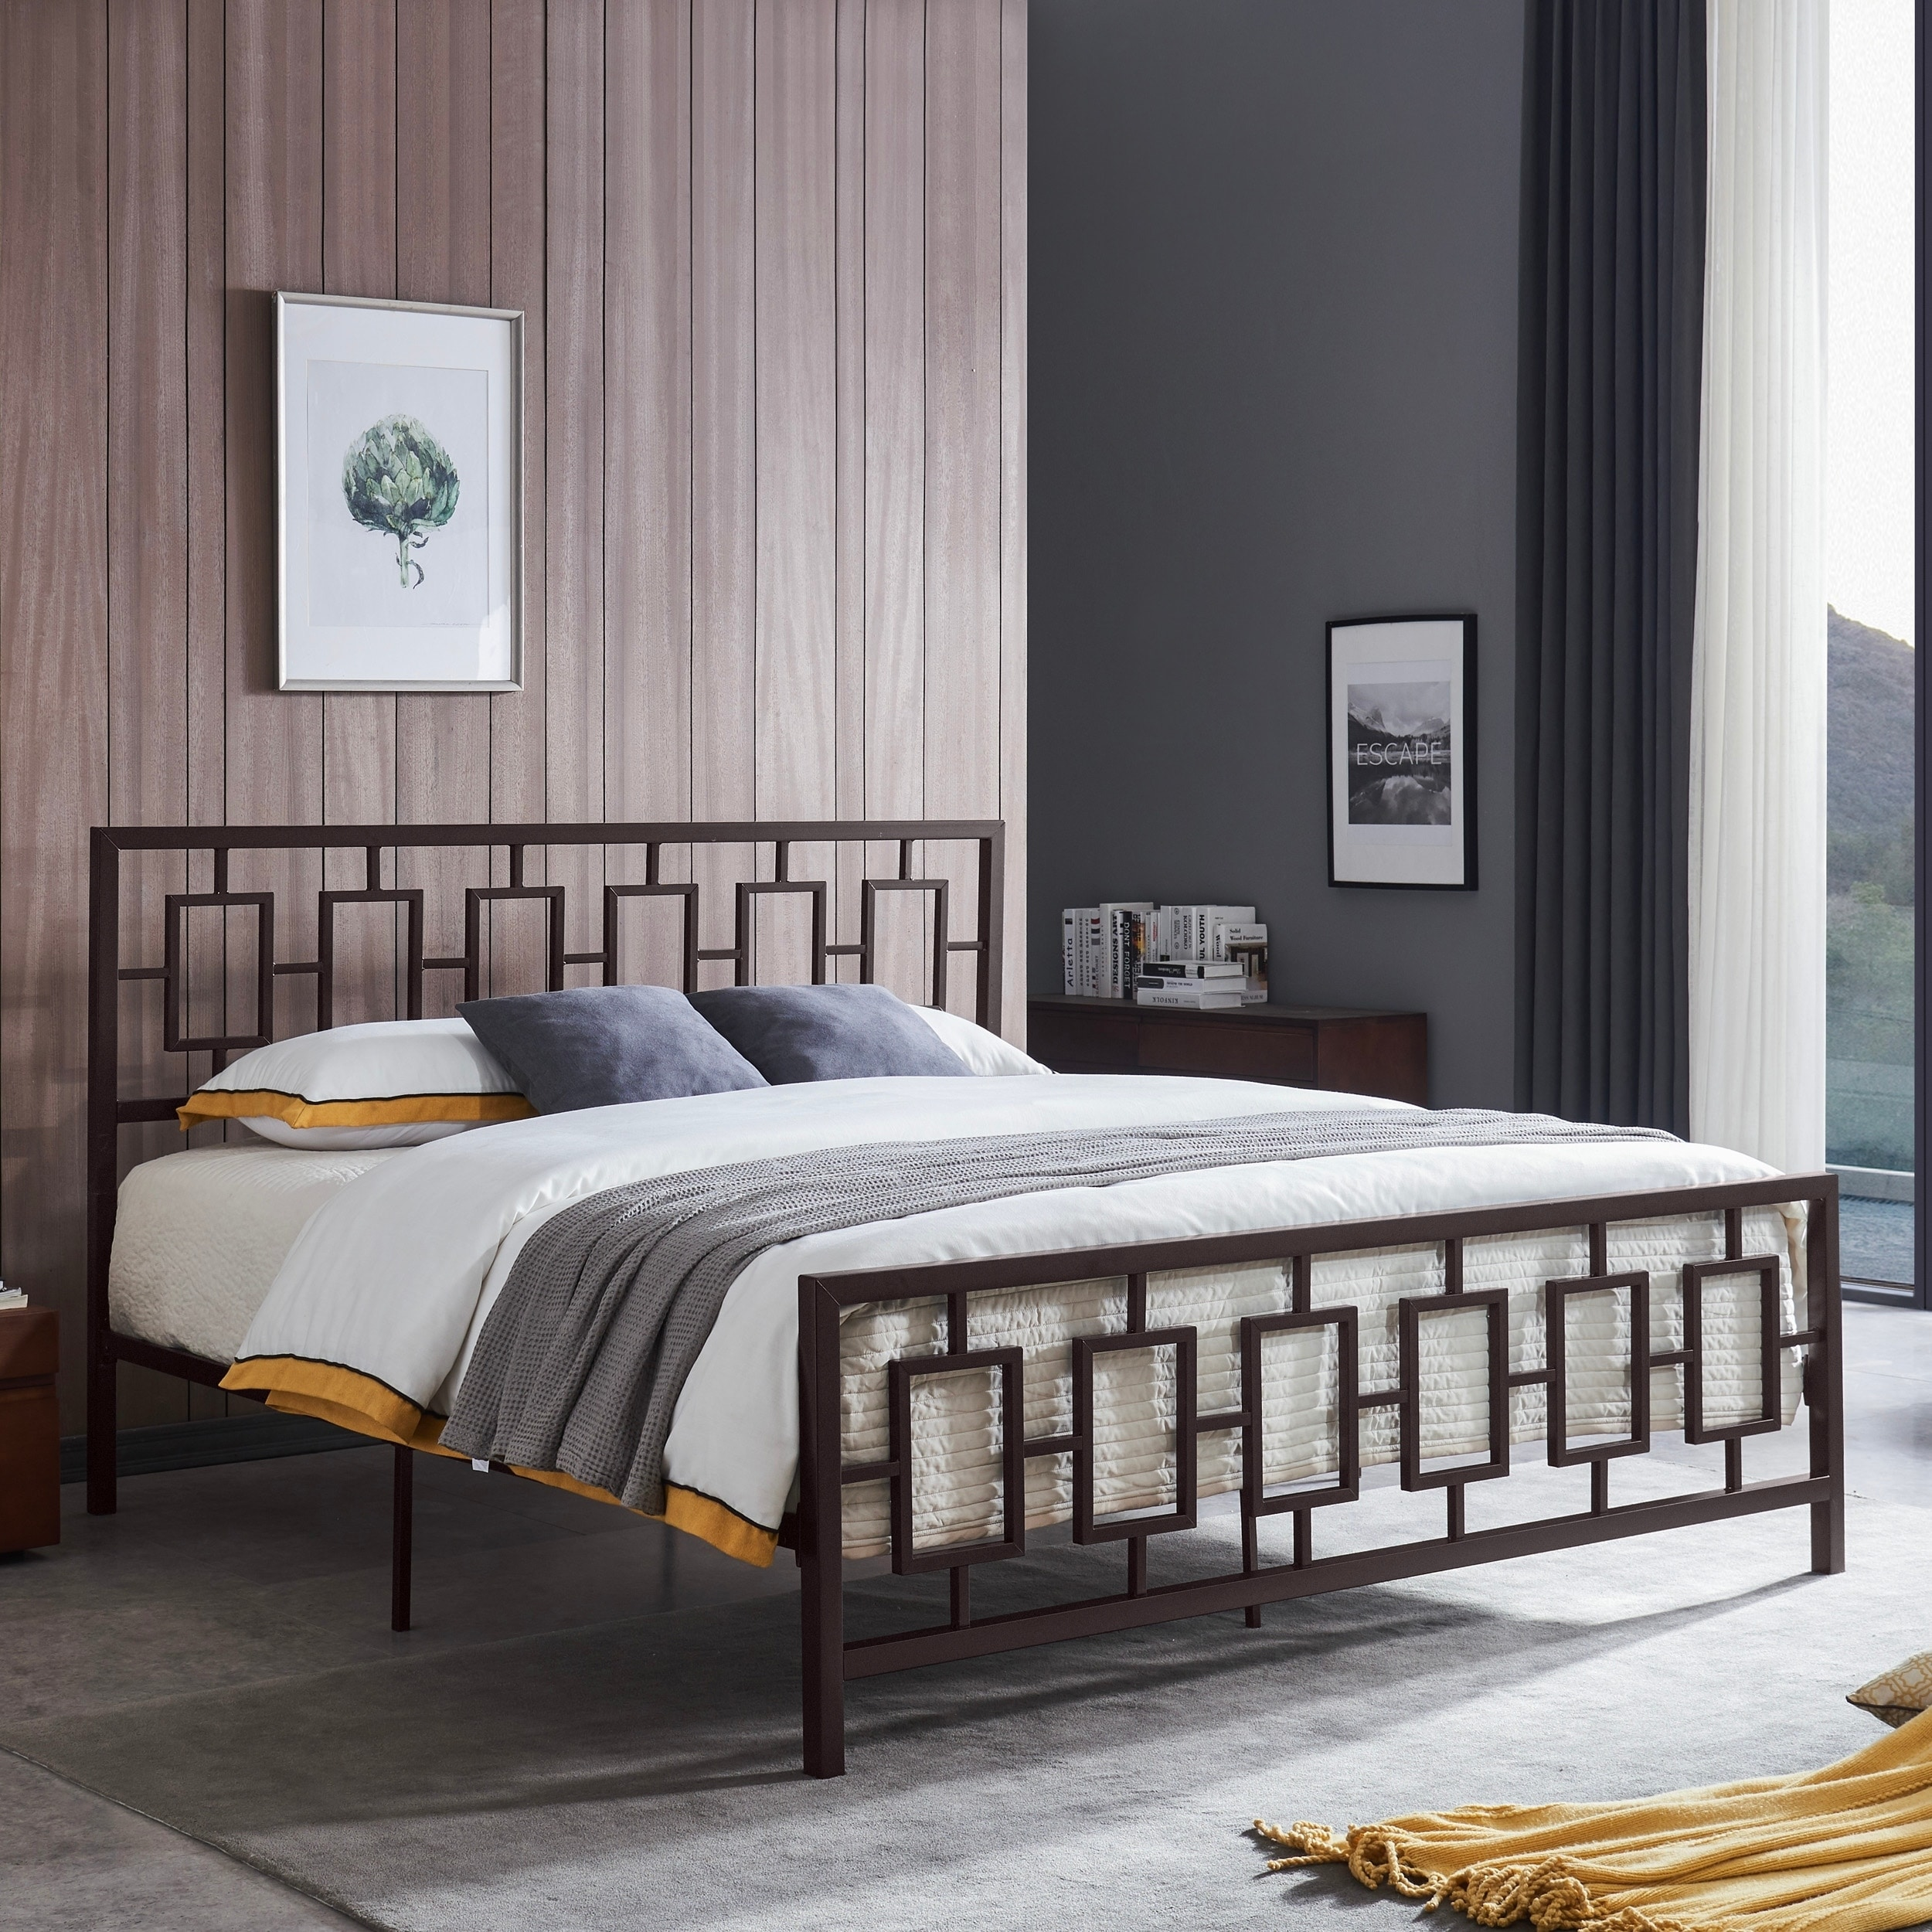 Claudia Modern King Bed Frame By Christopher Knight Home On Sale Overstock 29126448 White